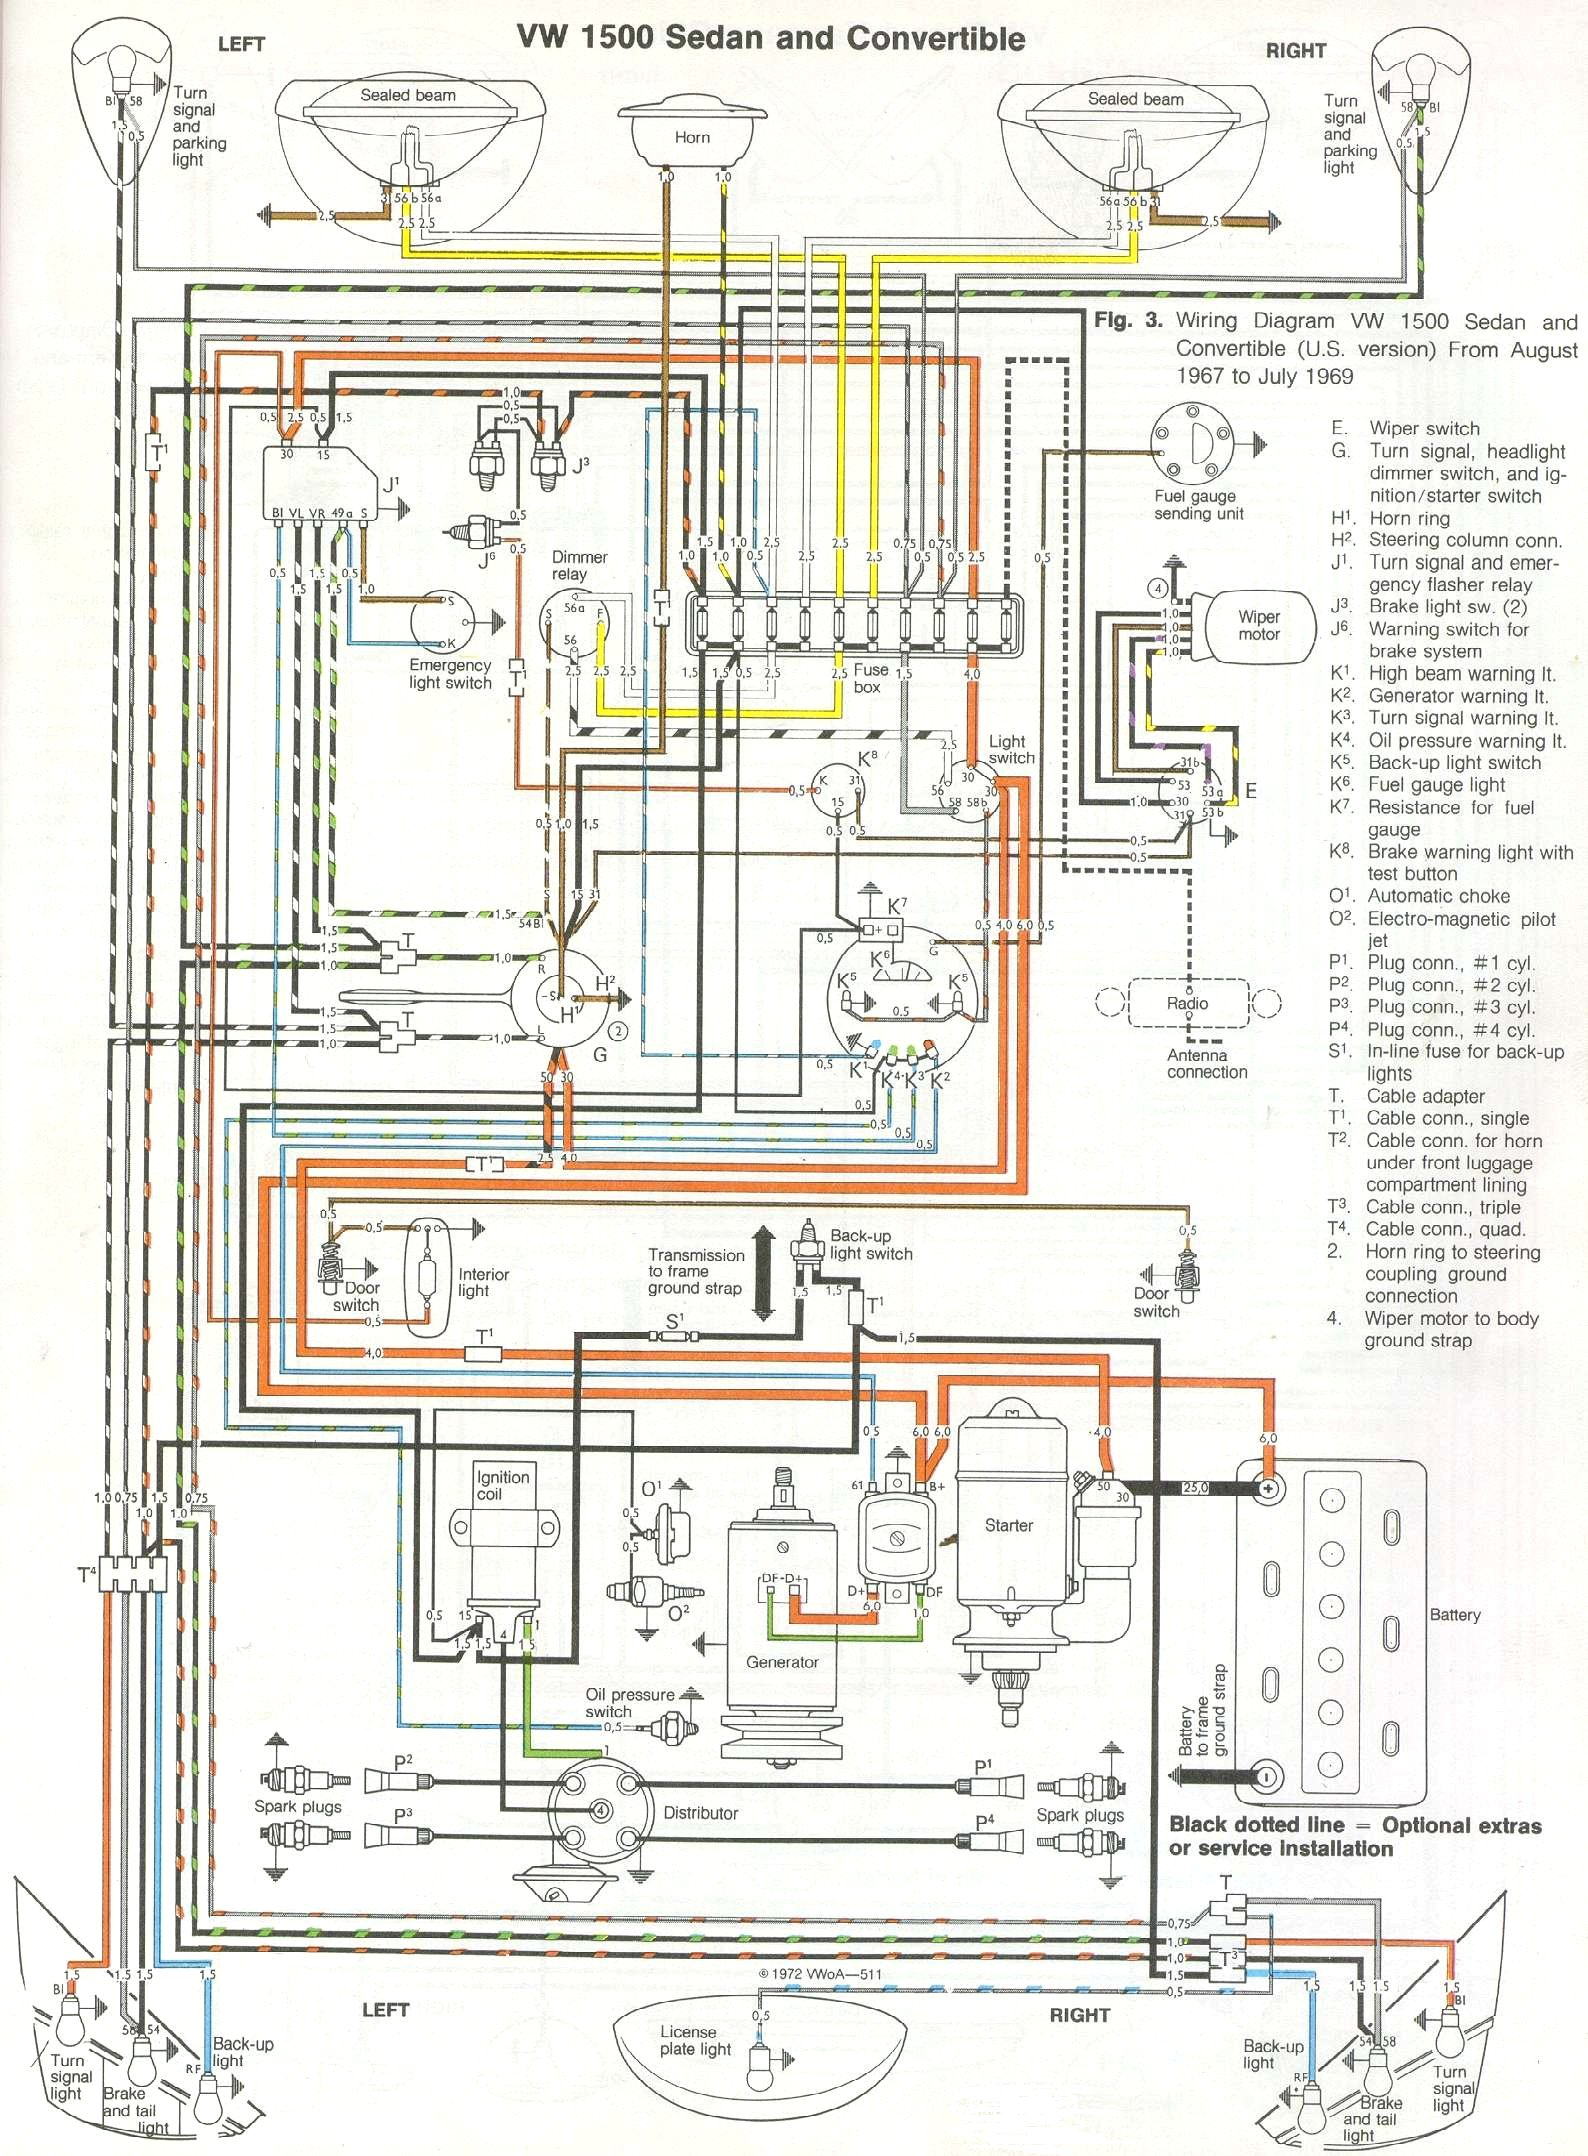 vw beetle wiring diagram vw wiring diagrams online thesamba com type 1 wiring diagrams description vw beetle wiring diagram